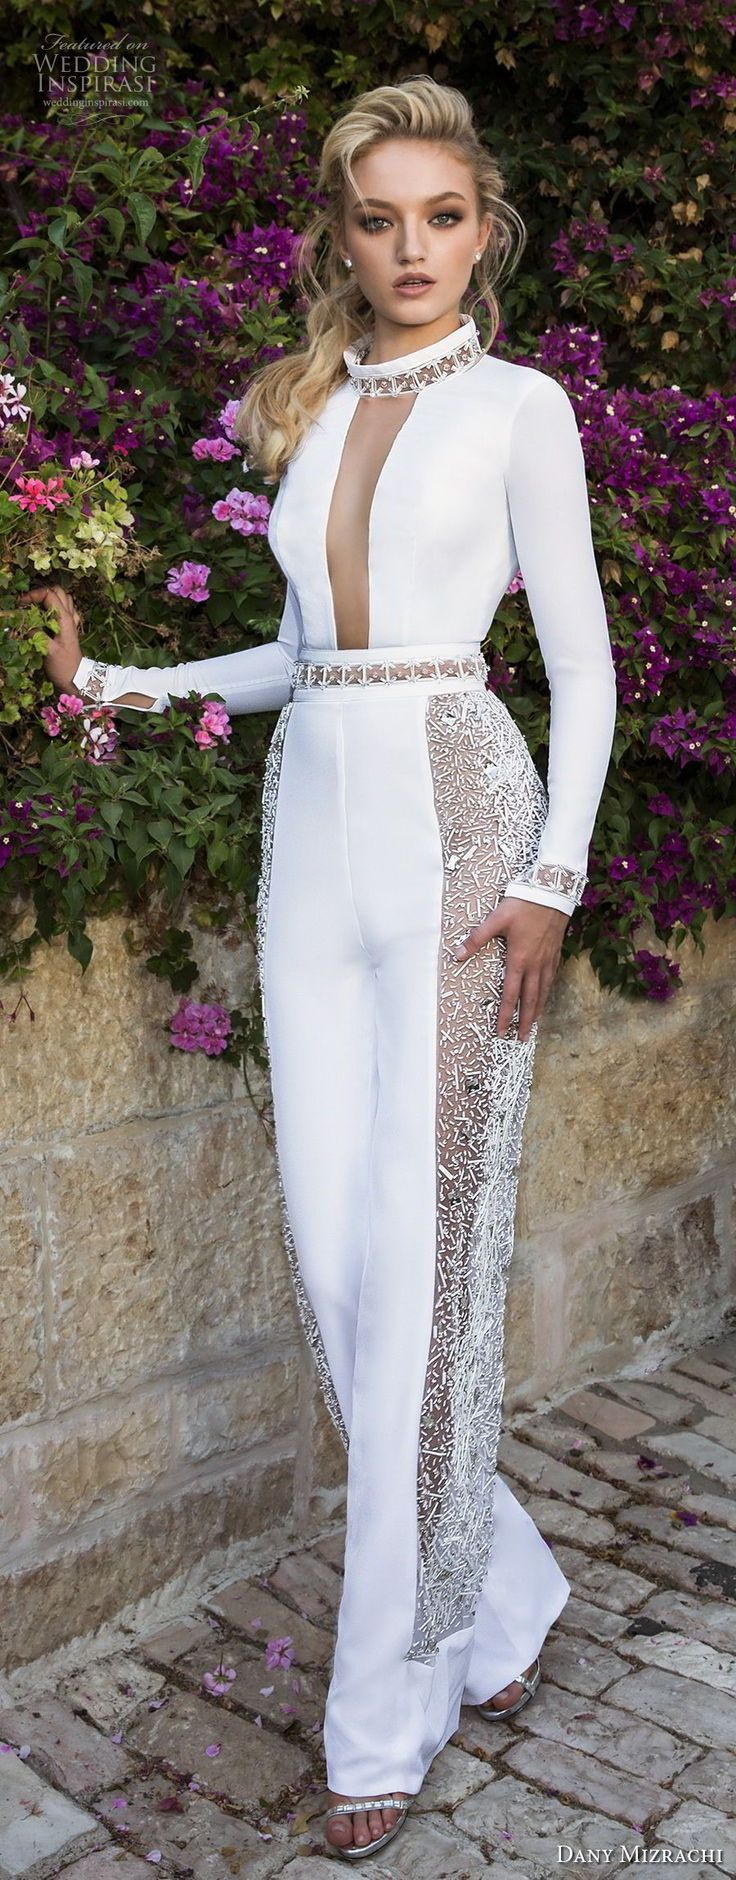 dany mizrachi spring 2018 bridal long sleevess high neck keyhole bodice simple chic jumpsuit wedding dress keyhole back (37) mv -- Dany Mizrachi Spring 2018 Wedding Dresses